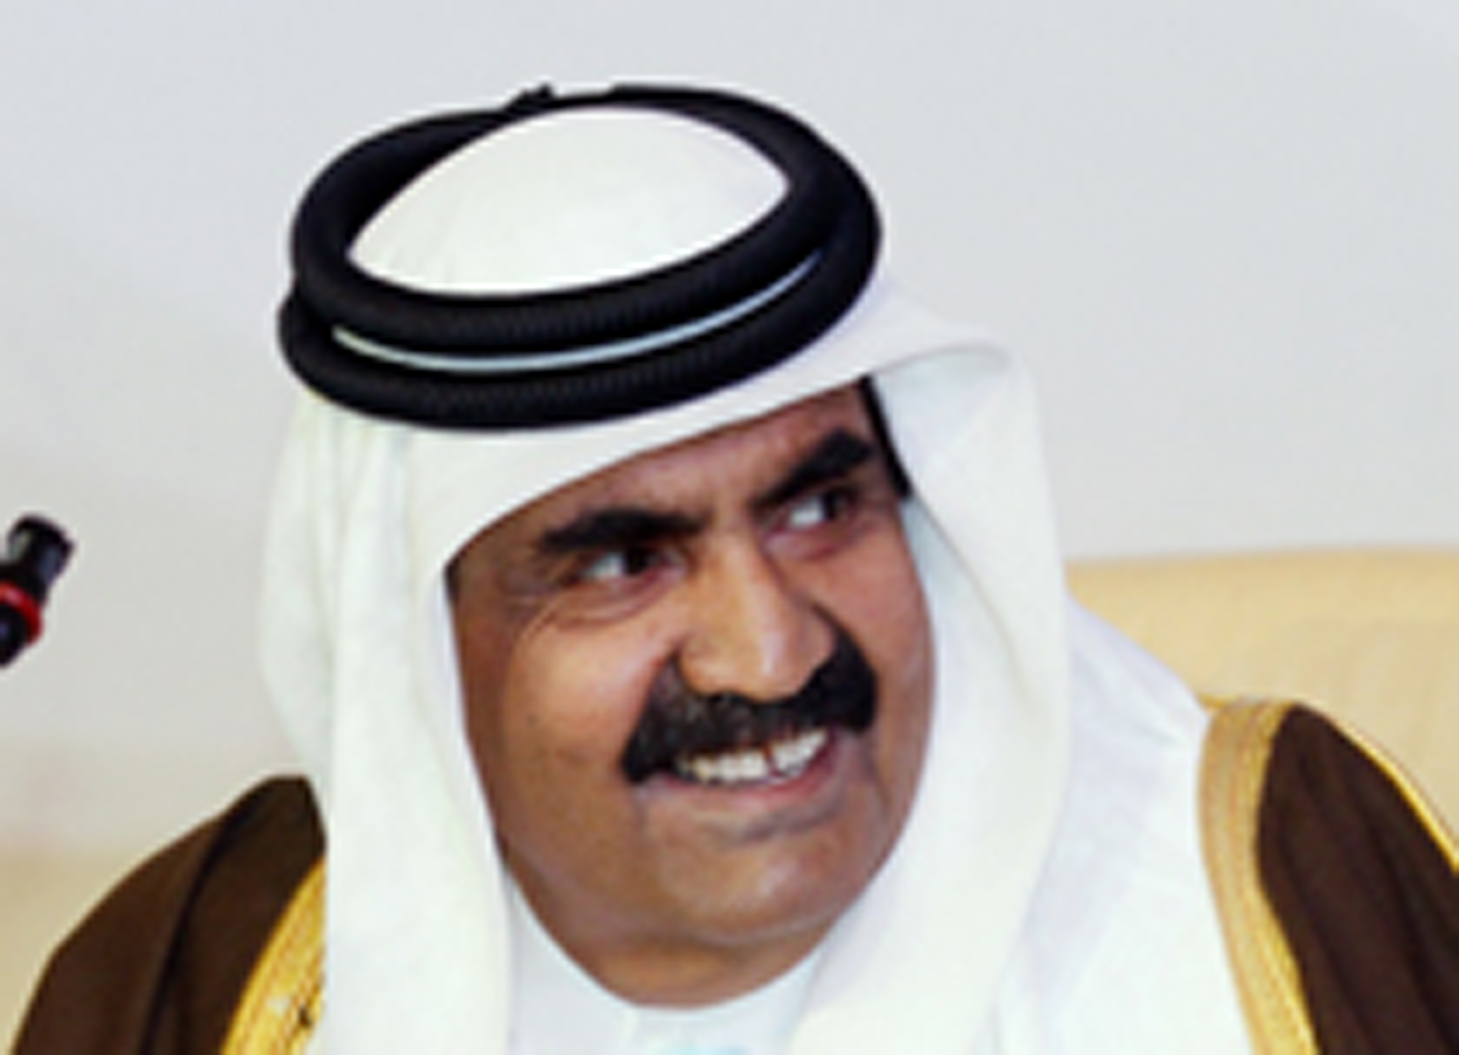 Qatar's Emir Sheikh Hamad bin Khalifa al-Thani attends the opening of the International Conference on Jerusalem in Doha